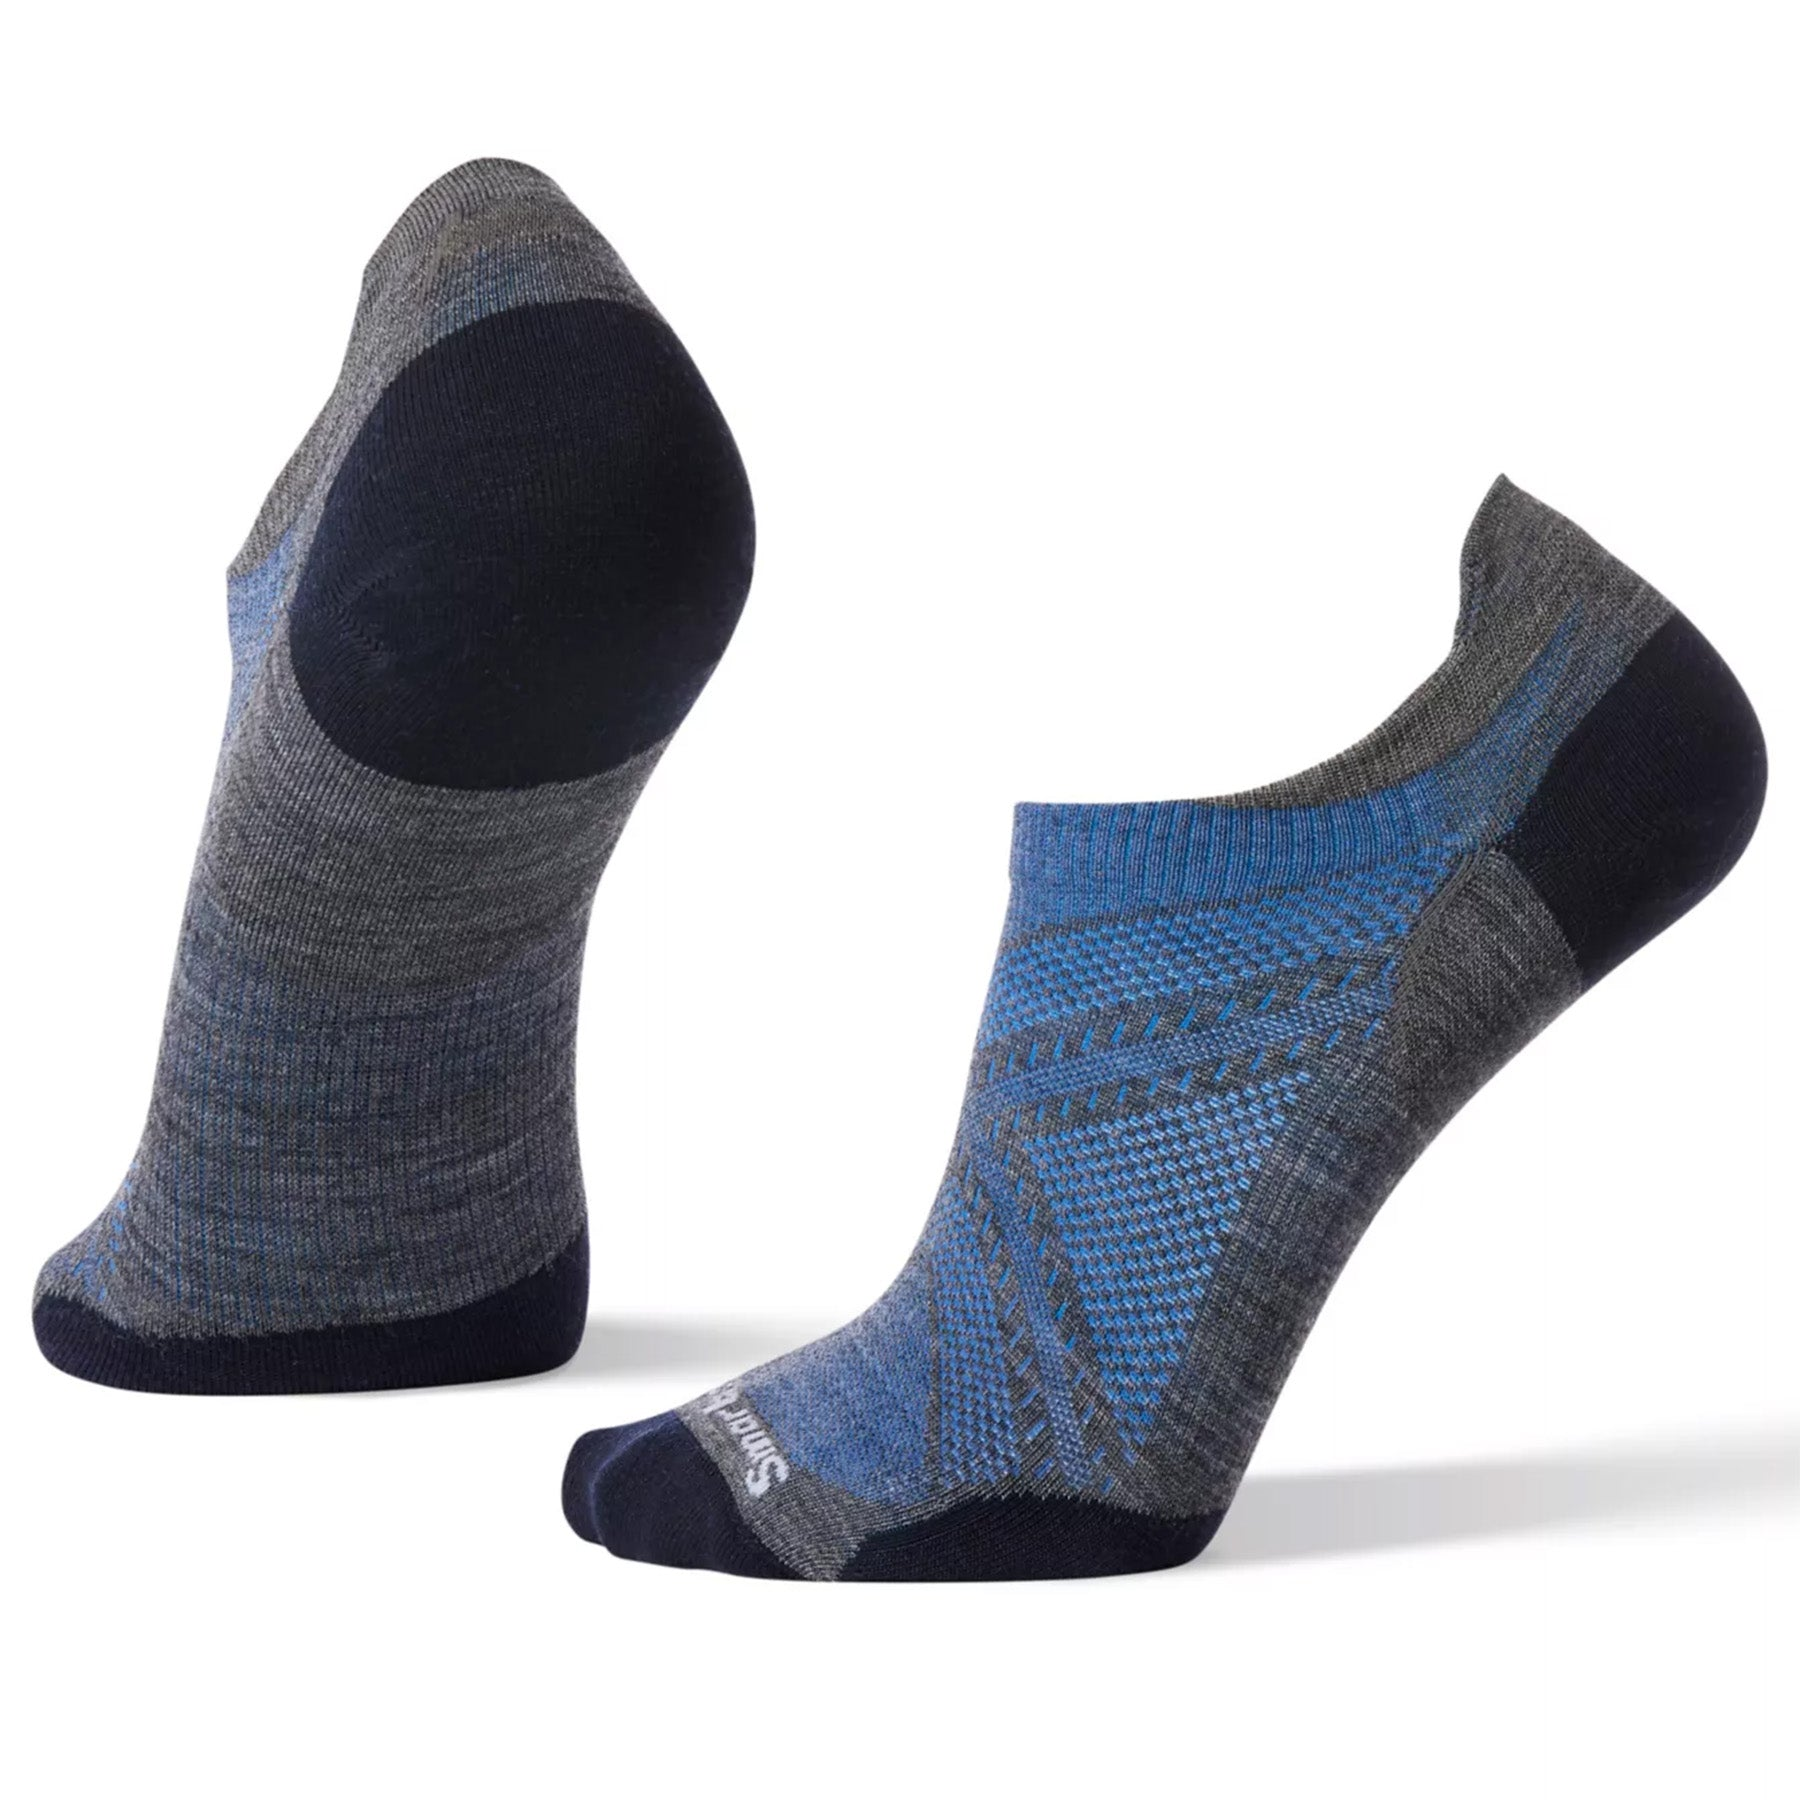 the medium gray men's phd run ultra light micro socks